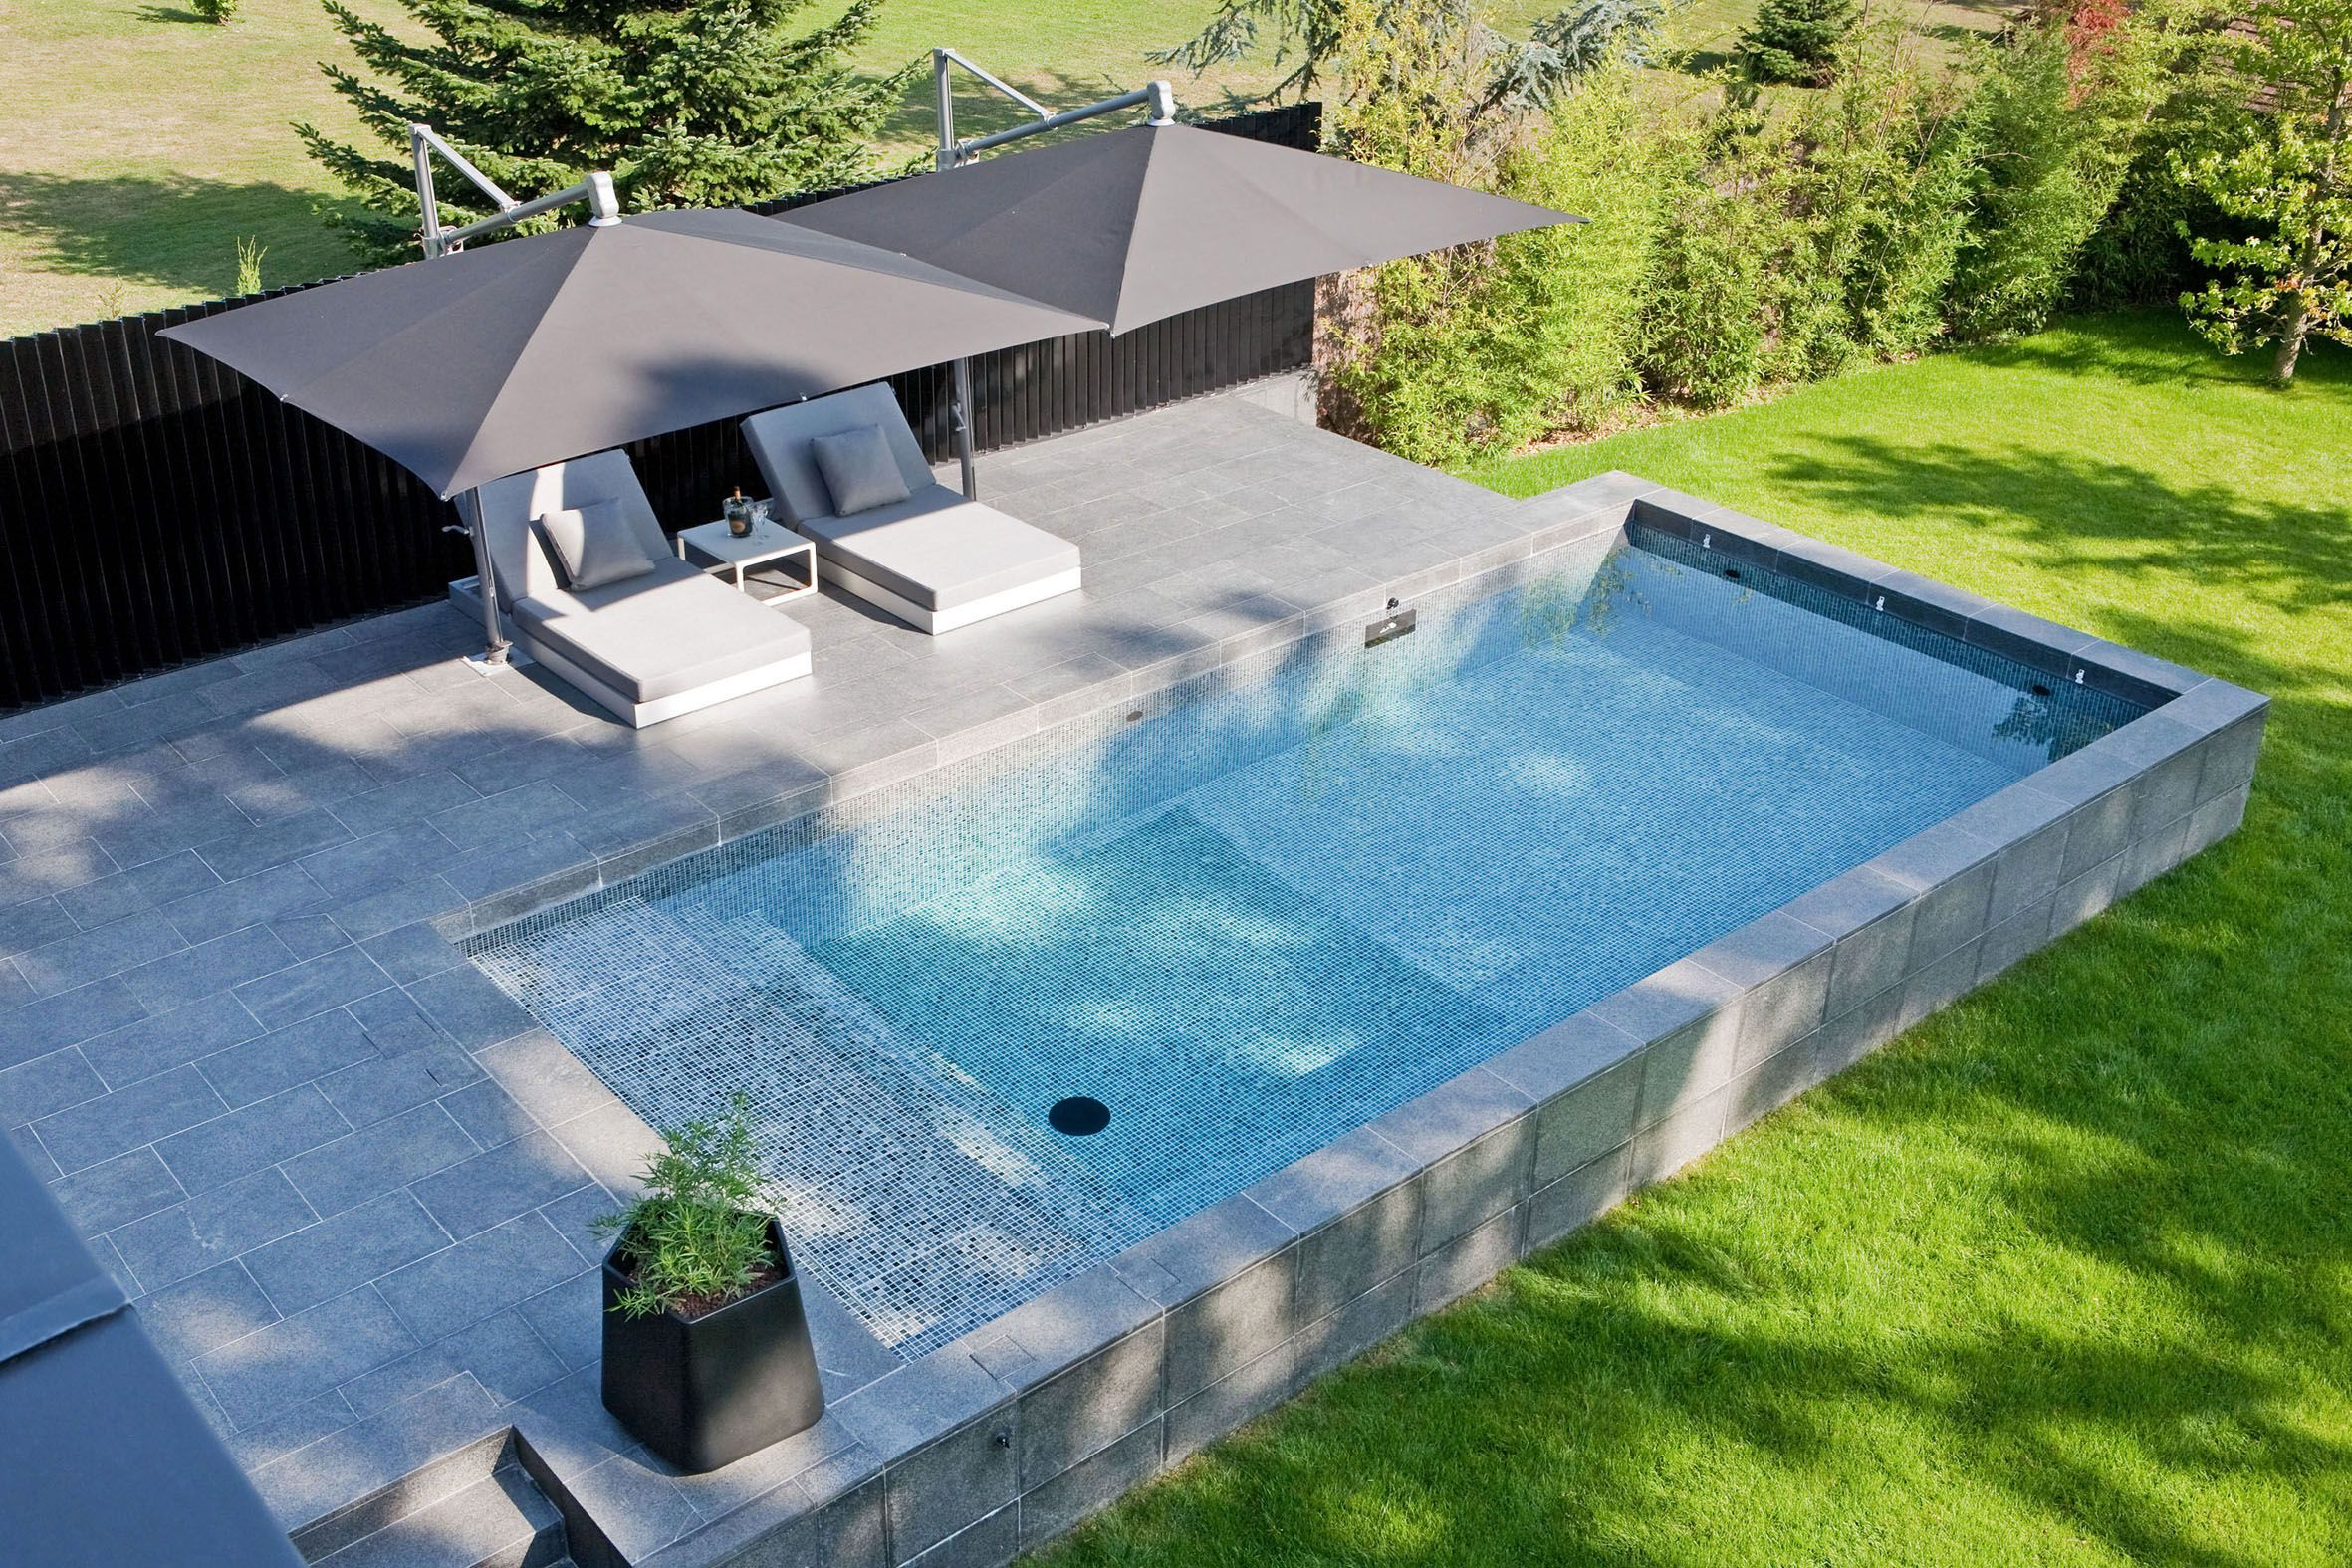 piscine semi enterr e en b ton terrasse mr et mme renner. Black Bedroom Furniture Sets. Home Design Ideas